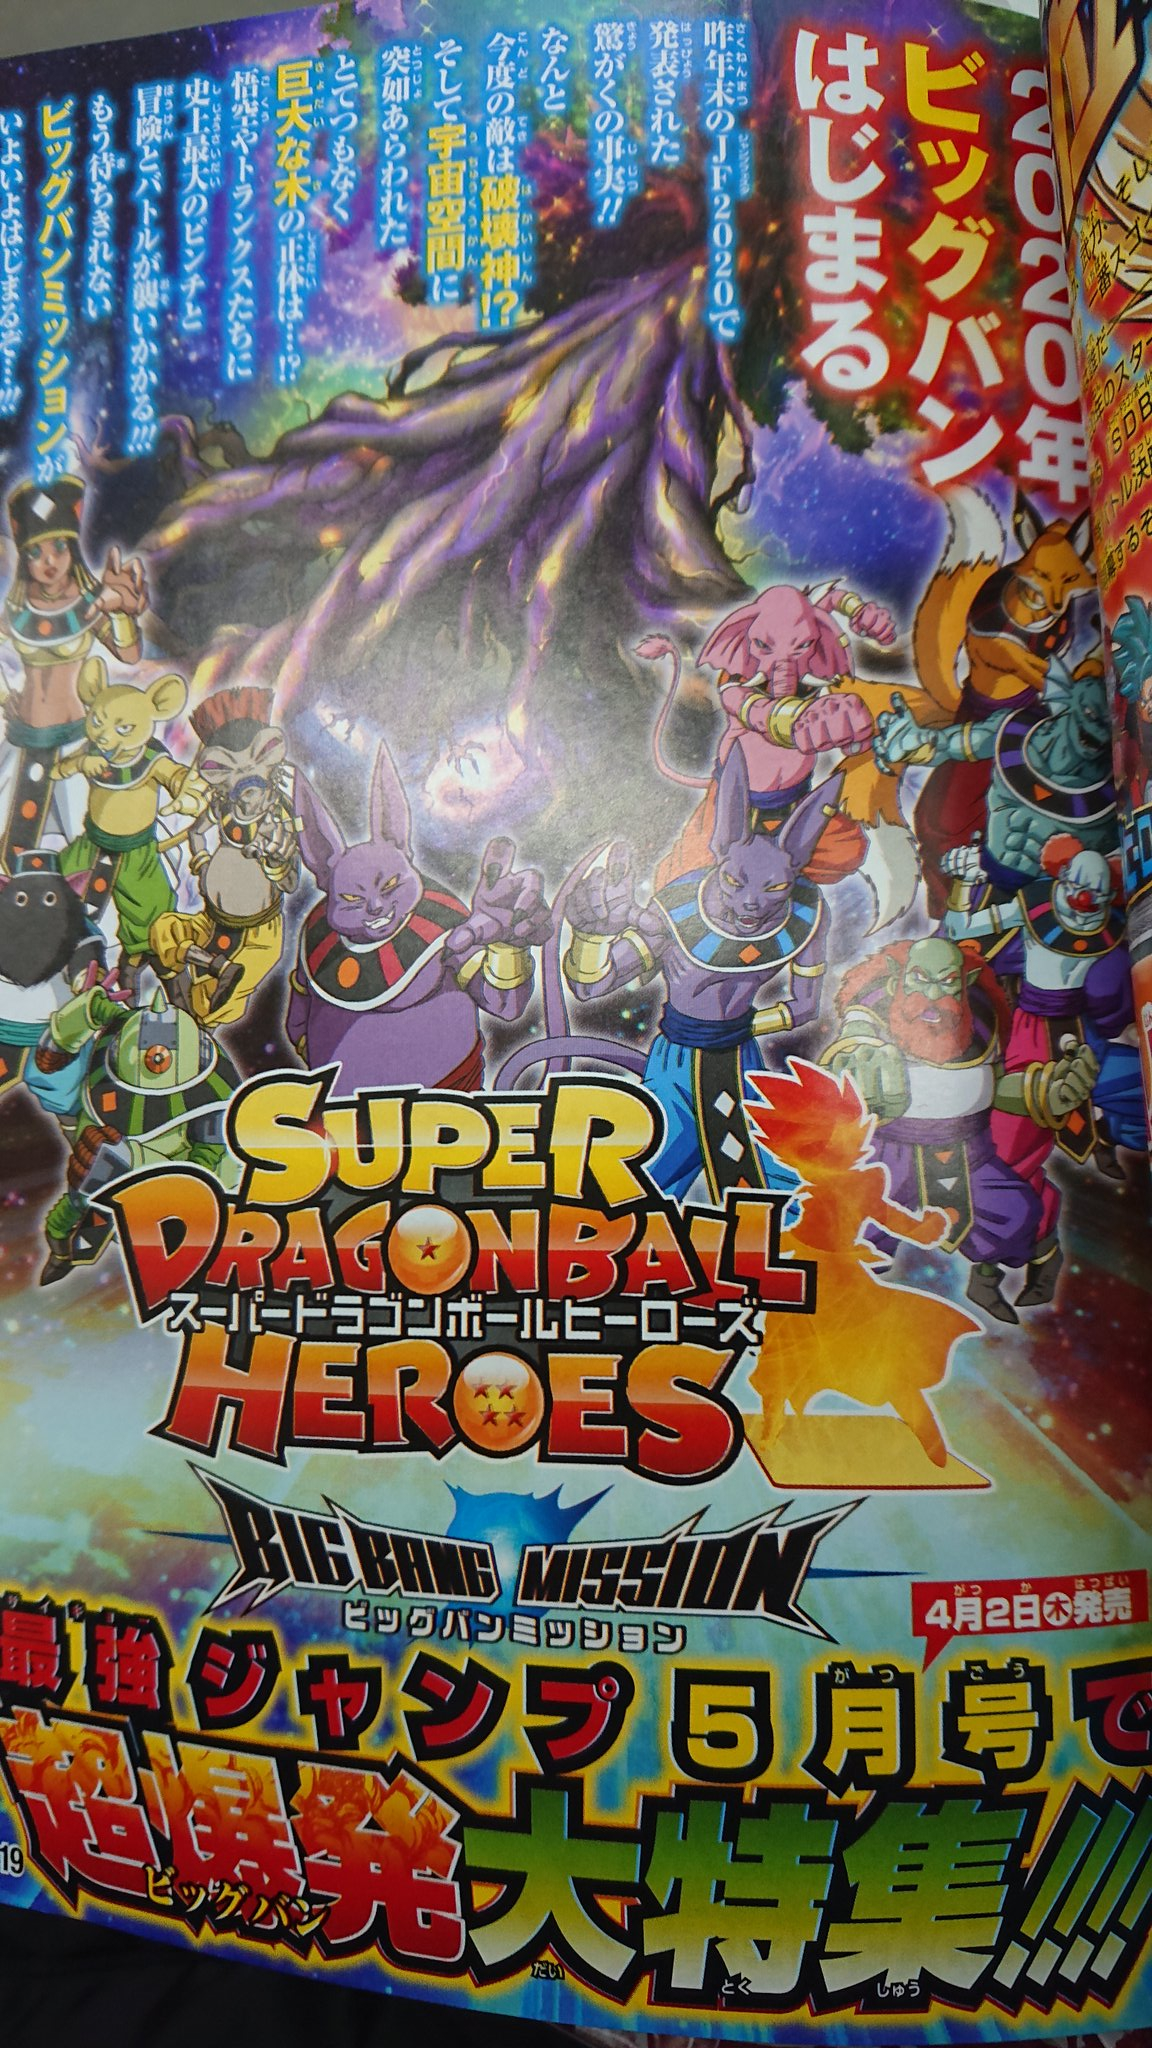 Super Dragon Ball Heroes : Nouveau visuel pour la Big Bang Mission